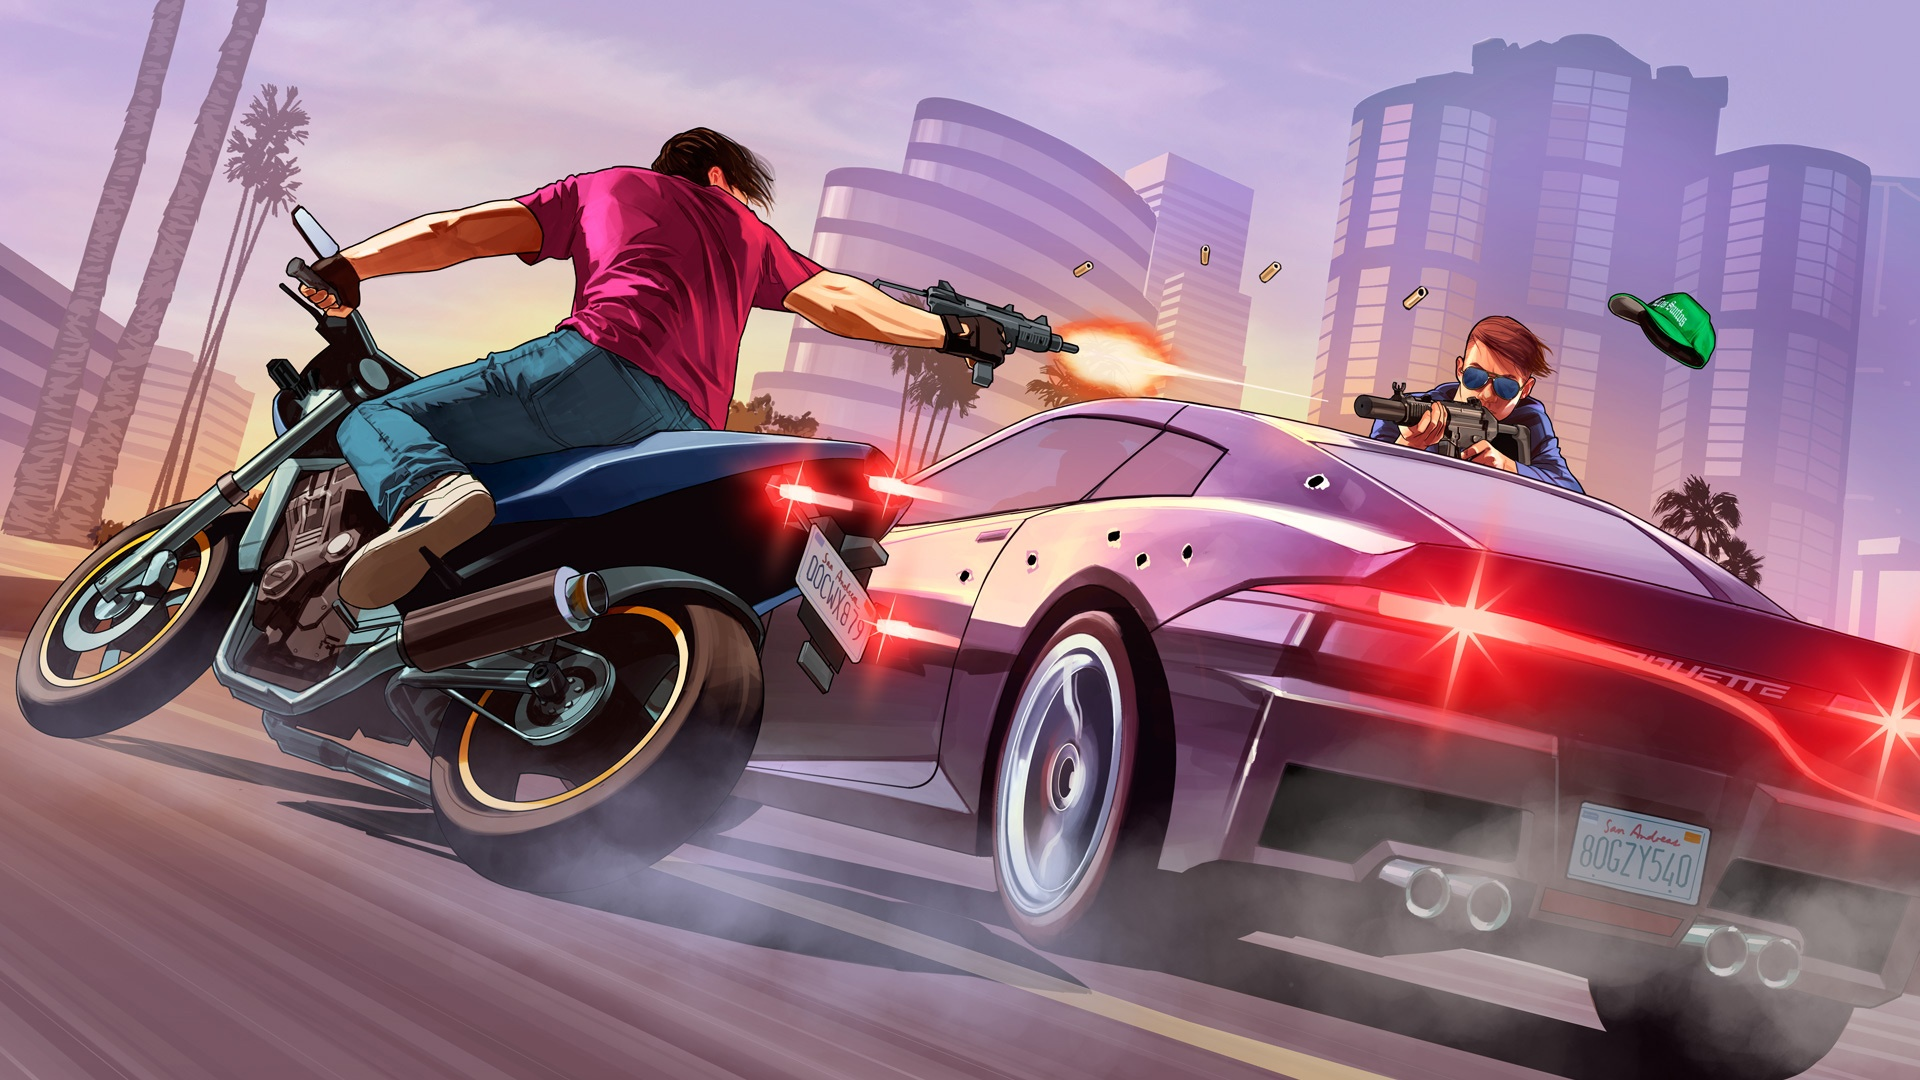 downloadfiles wallpapers 1920 1080 gta 5 street fight 13312